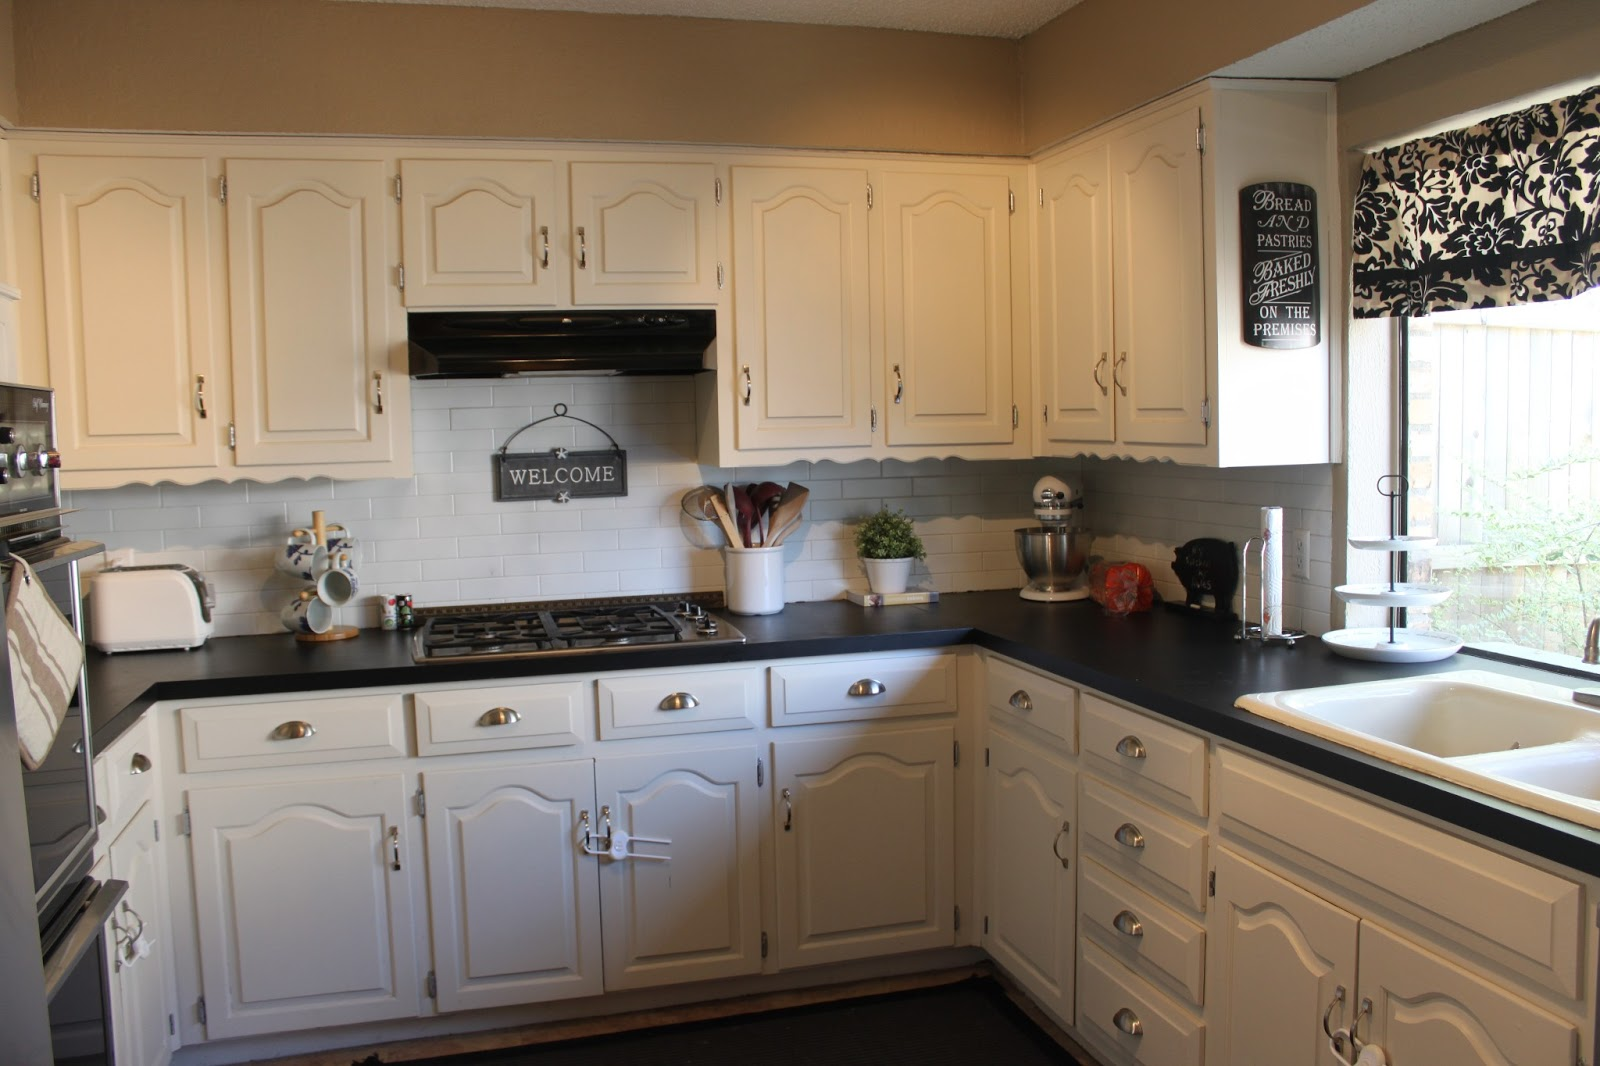 Countertop Paint Near Me : love my kitchen. The counters still look amazing.